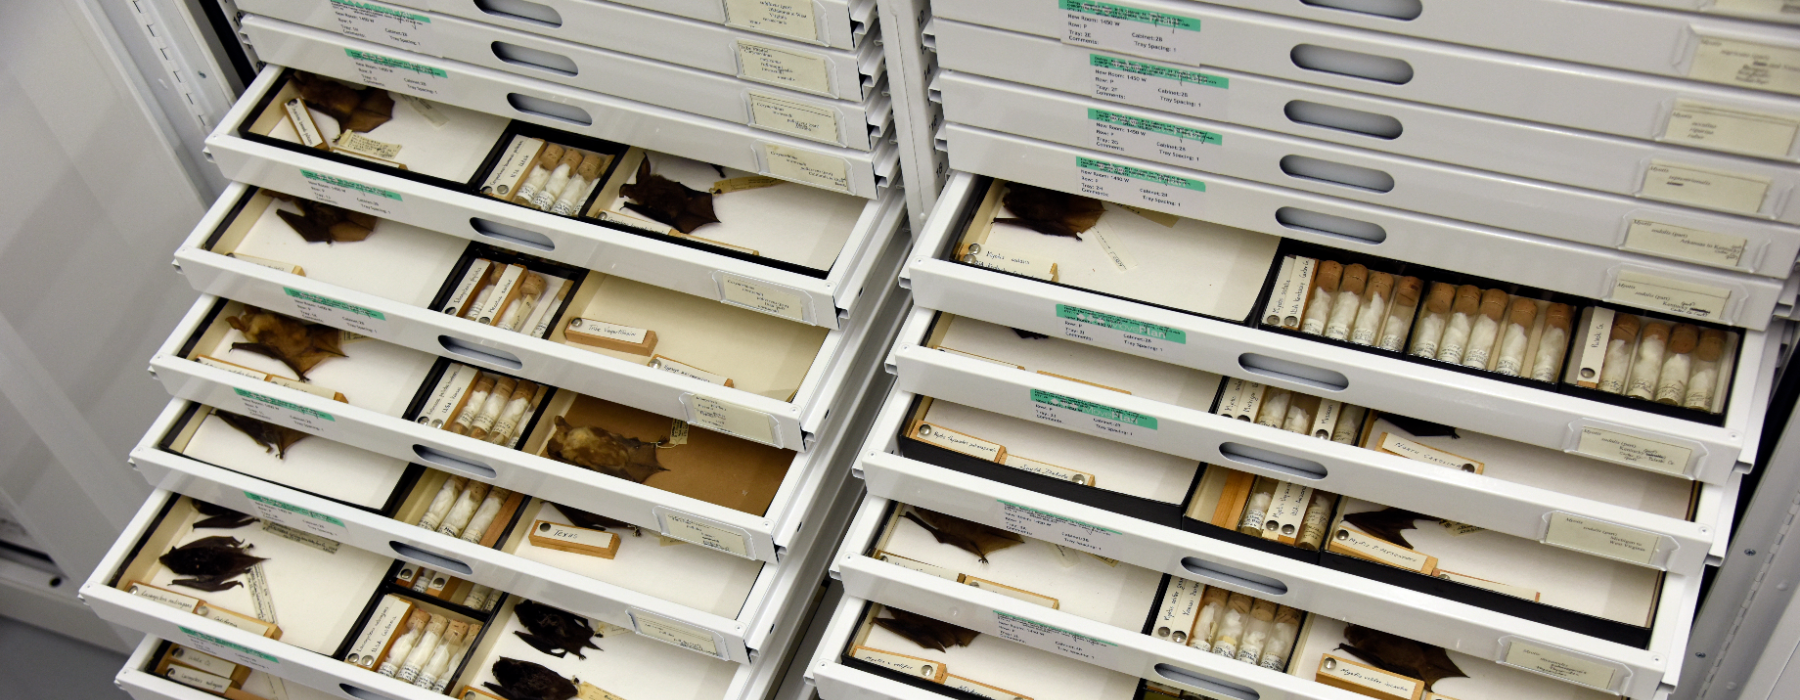 Q&A: Natural History Museums' Role in Pandemic Surveillance